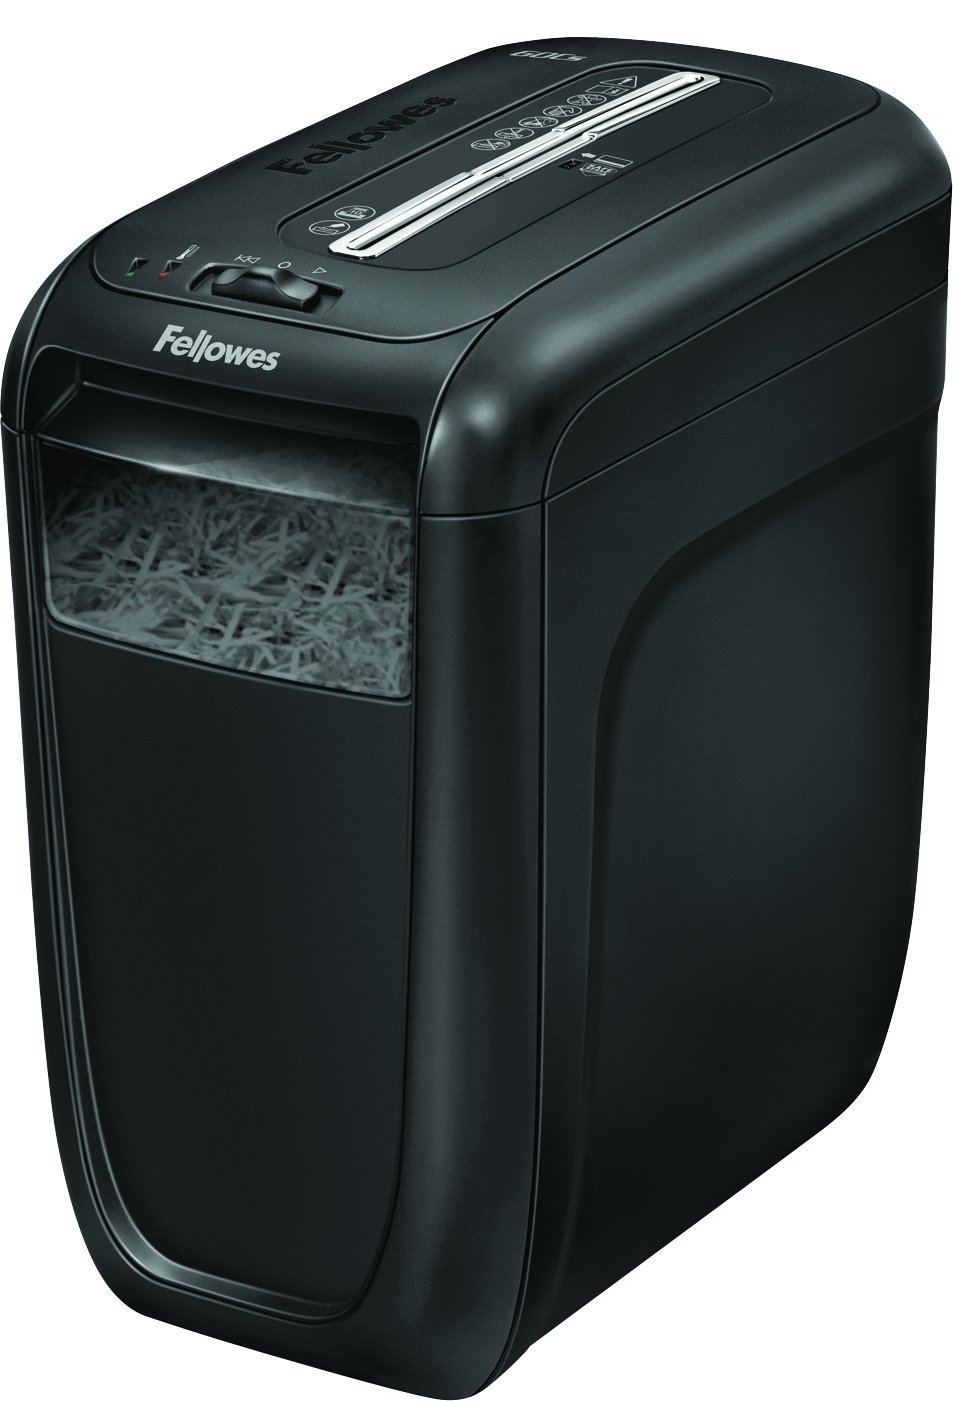 Fellowes Powershred 60Cs 10-Sheet Cross-Cut Paper and Credit Card Shredder with SafeSense Technology (4606001)